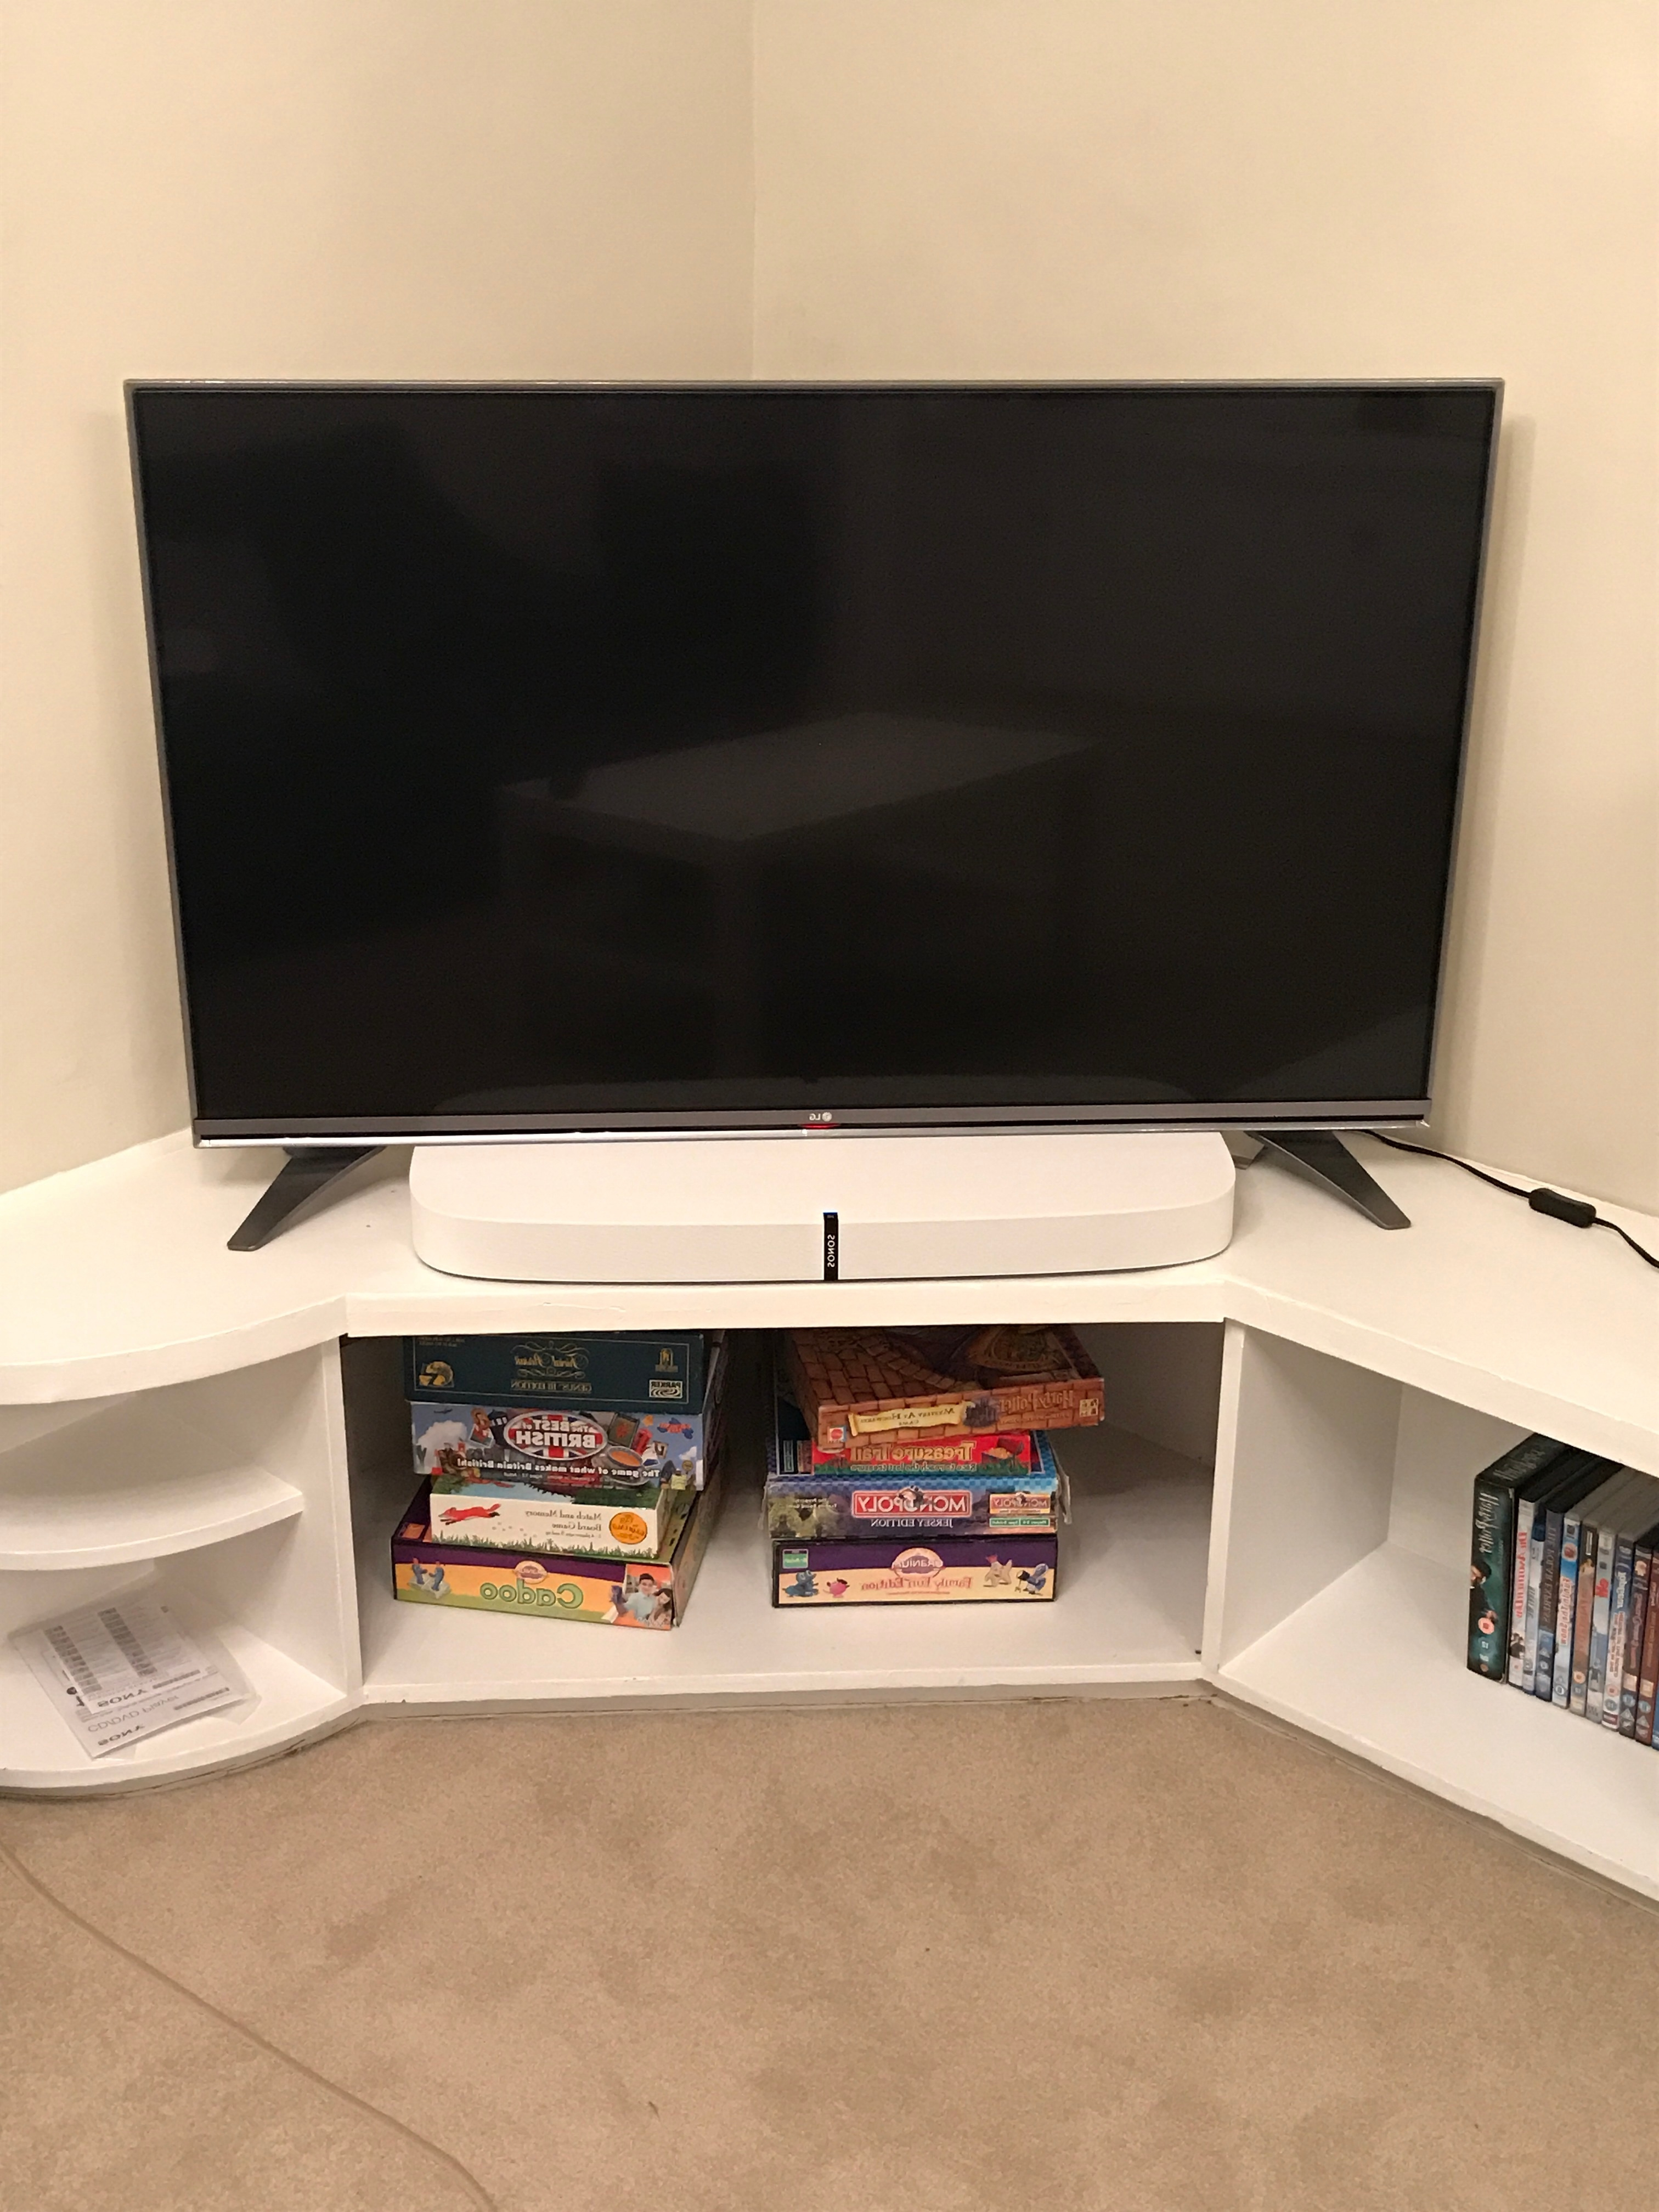 Photos Of Playbase On Tv With Outer Stands? (View 5 of 20)